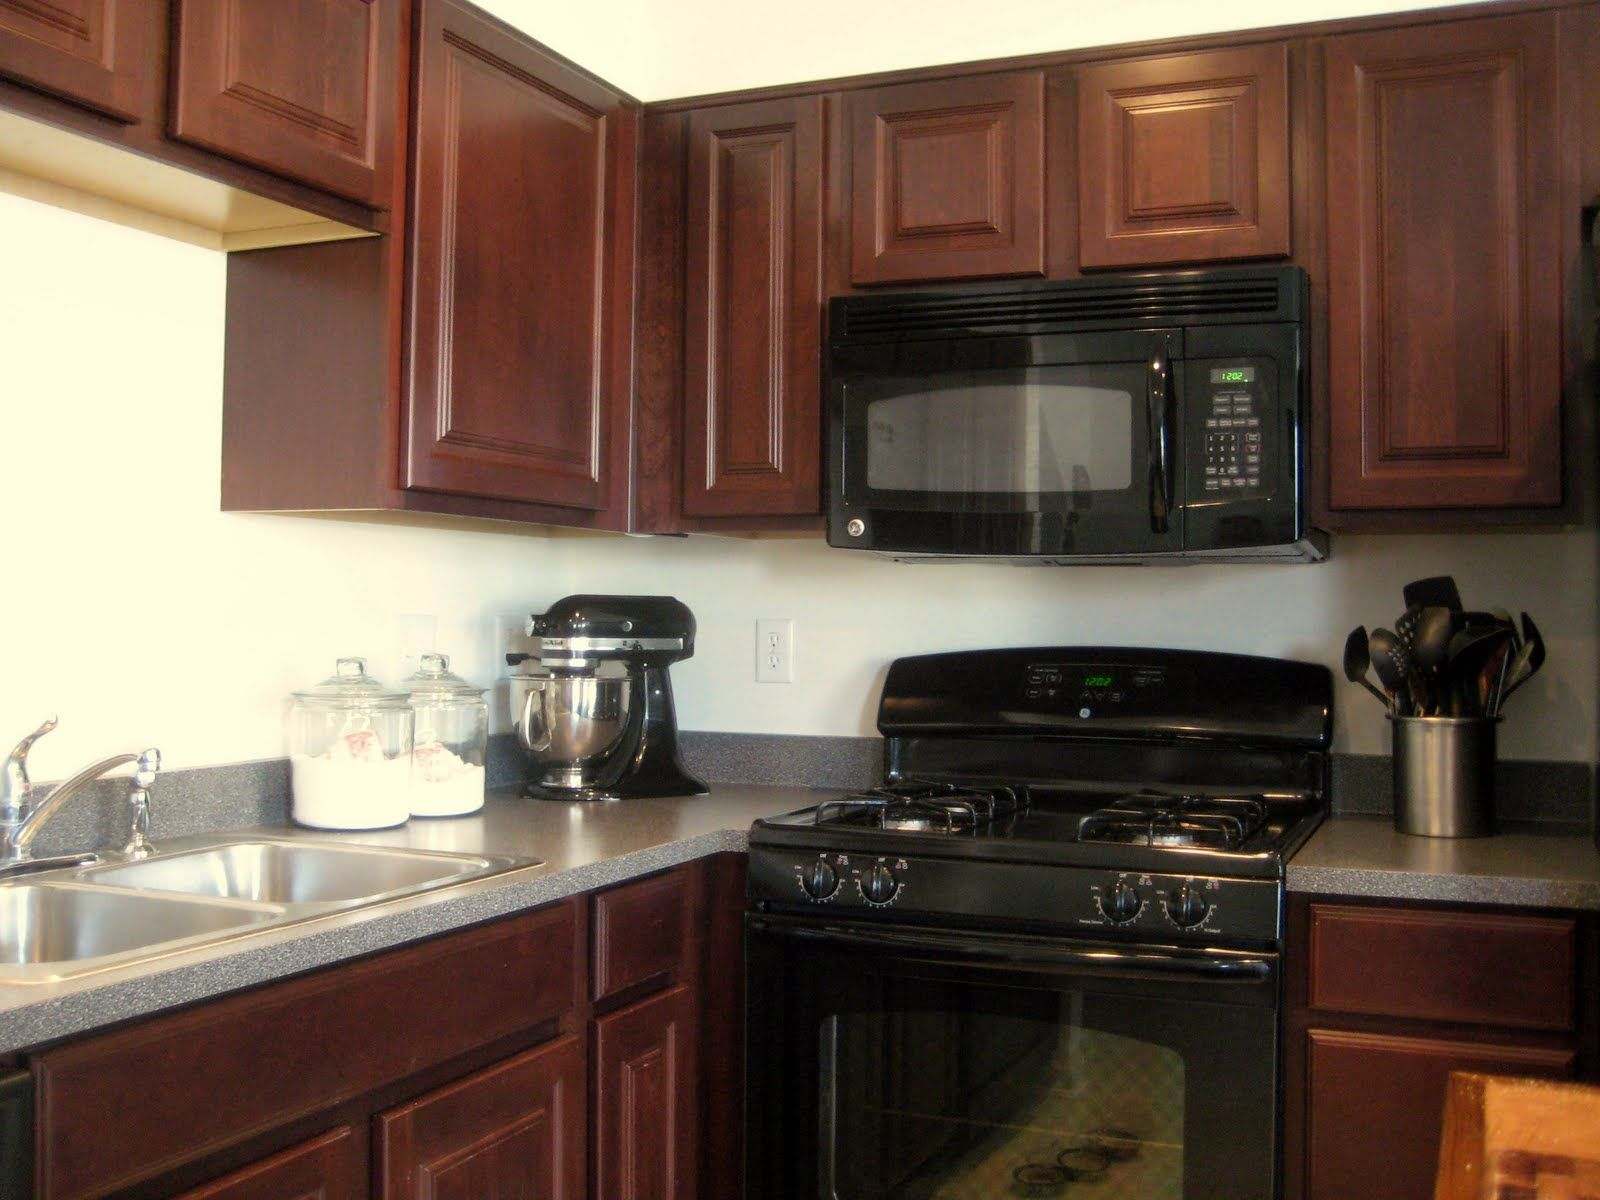 Brown Kitchen Cabinets With White Appliances I Like This Look A Lot Black Appliances Cherry Cabinets